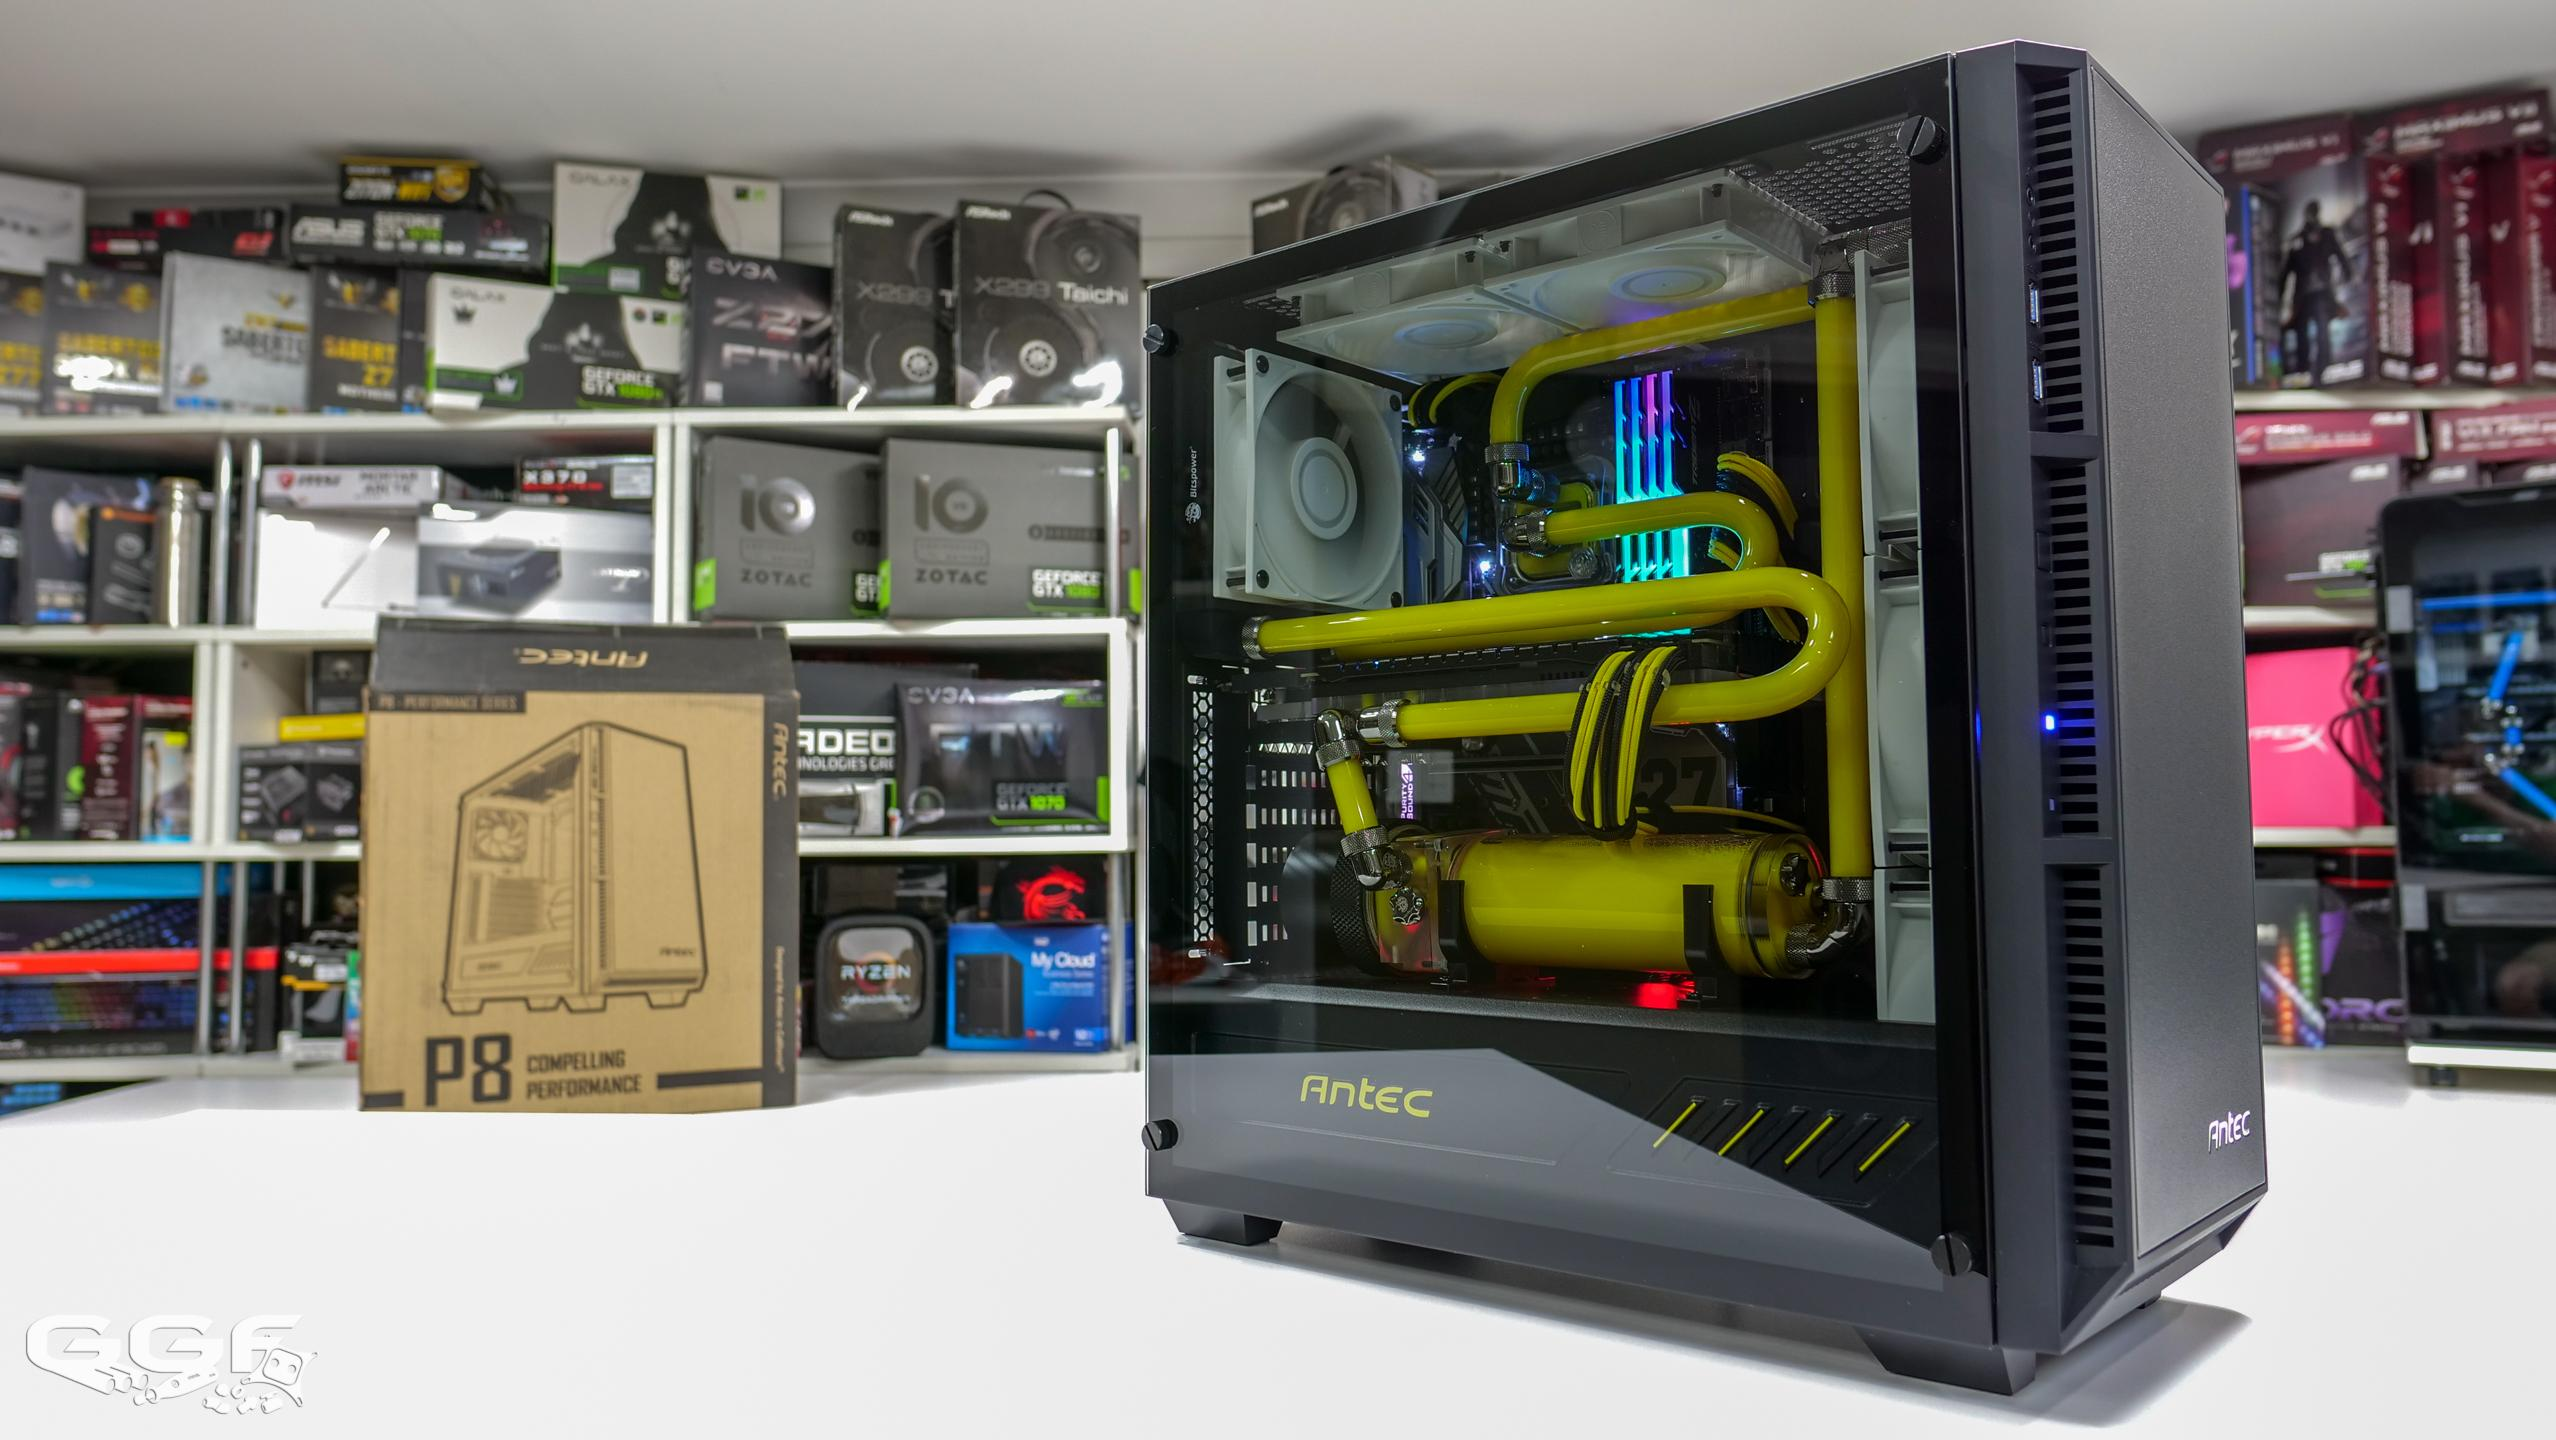 ANTEC P8 (REVIEW BUILD) - XFastest - P1044548-2.jpg